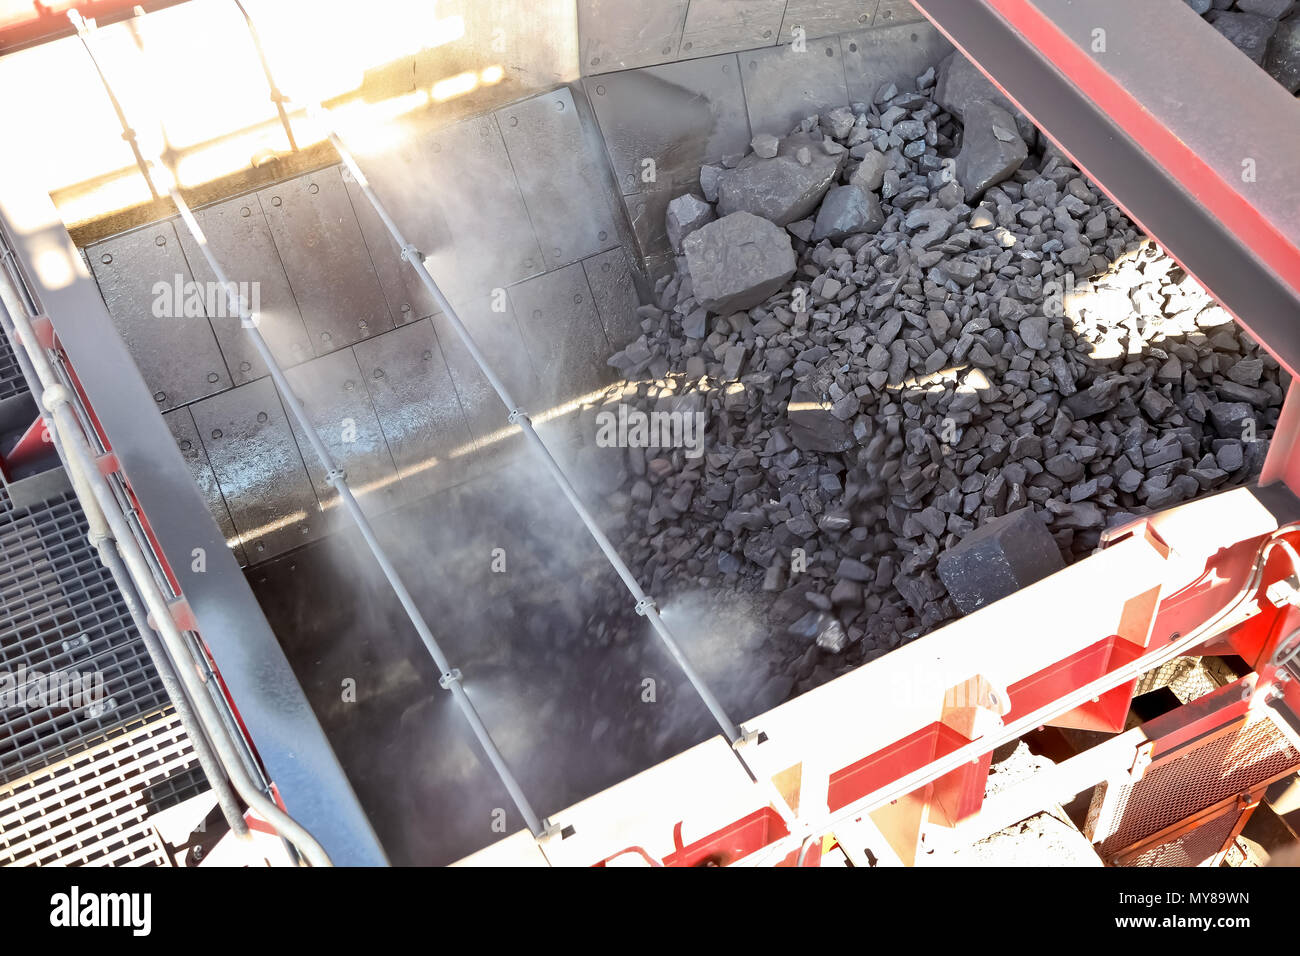 Manganese Mining and processing of ore rich rocks in wash bay - Stock Image